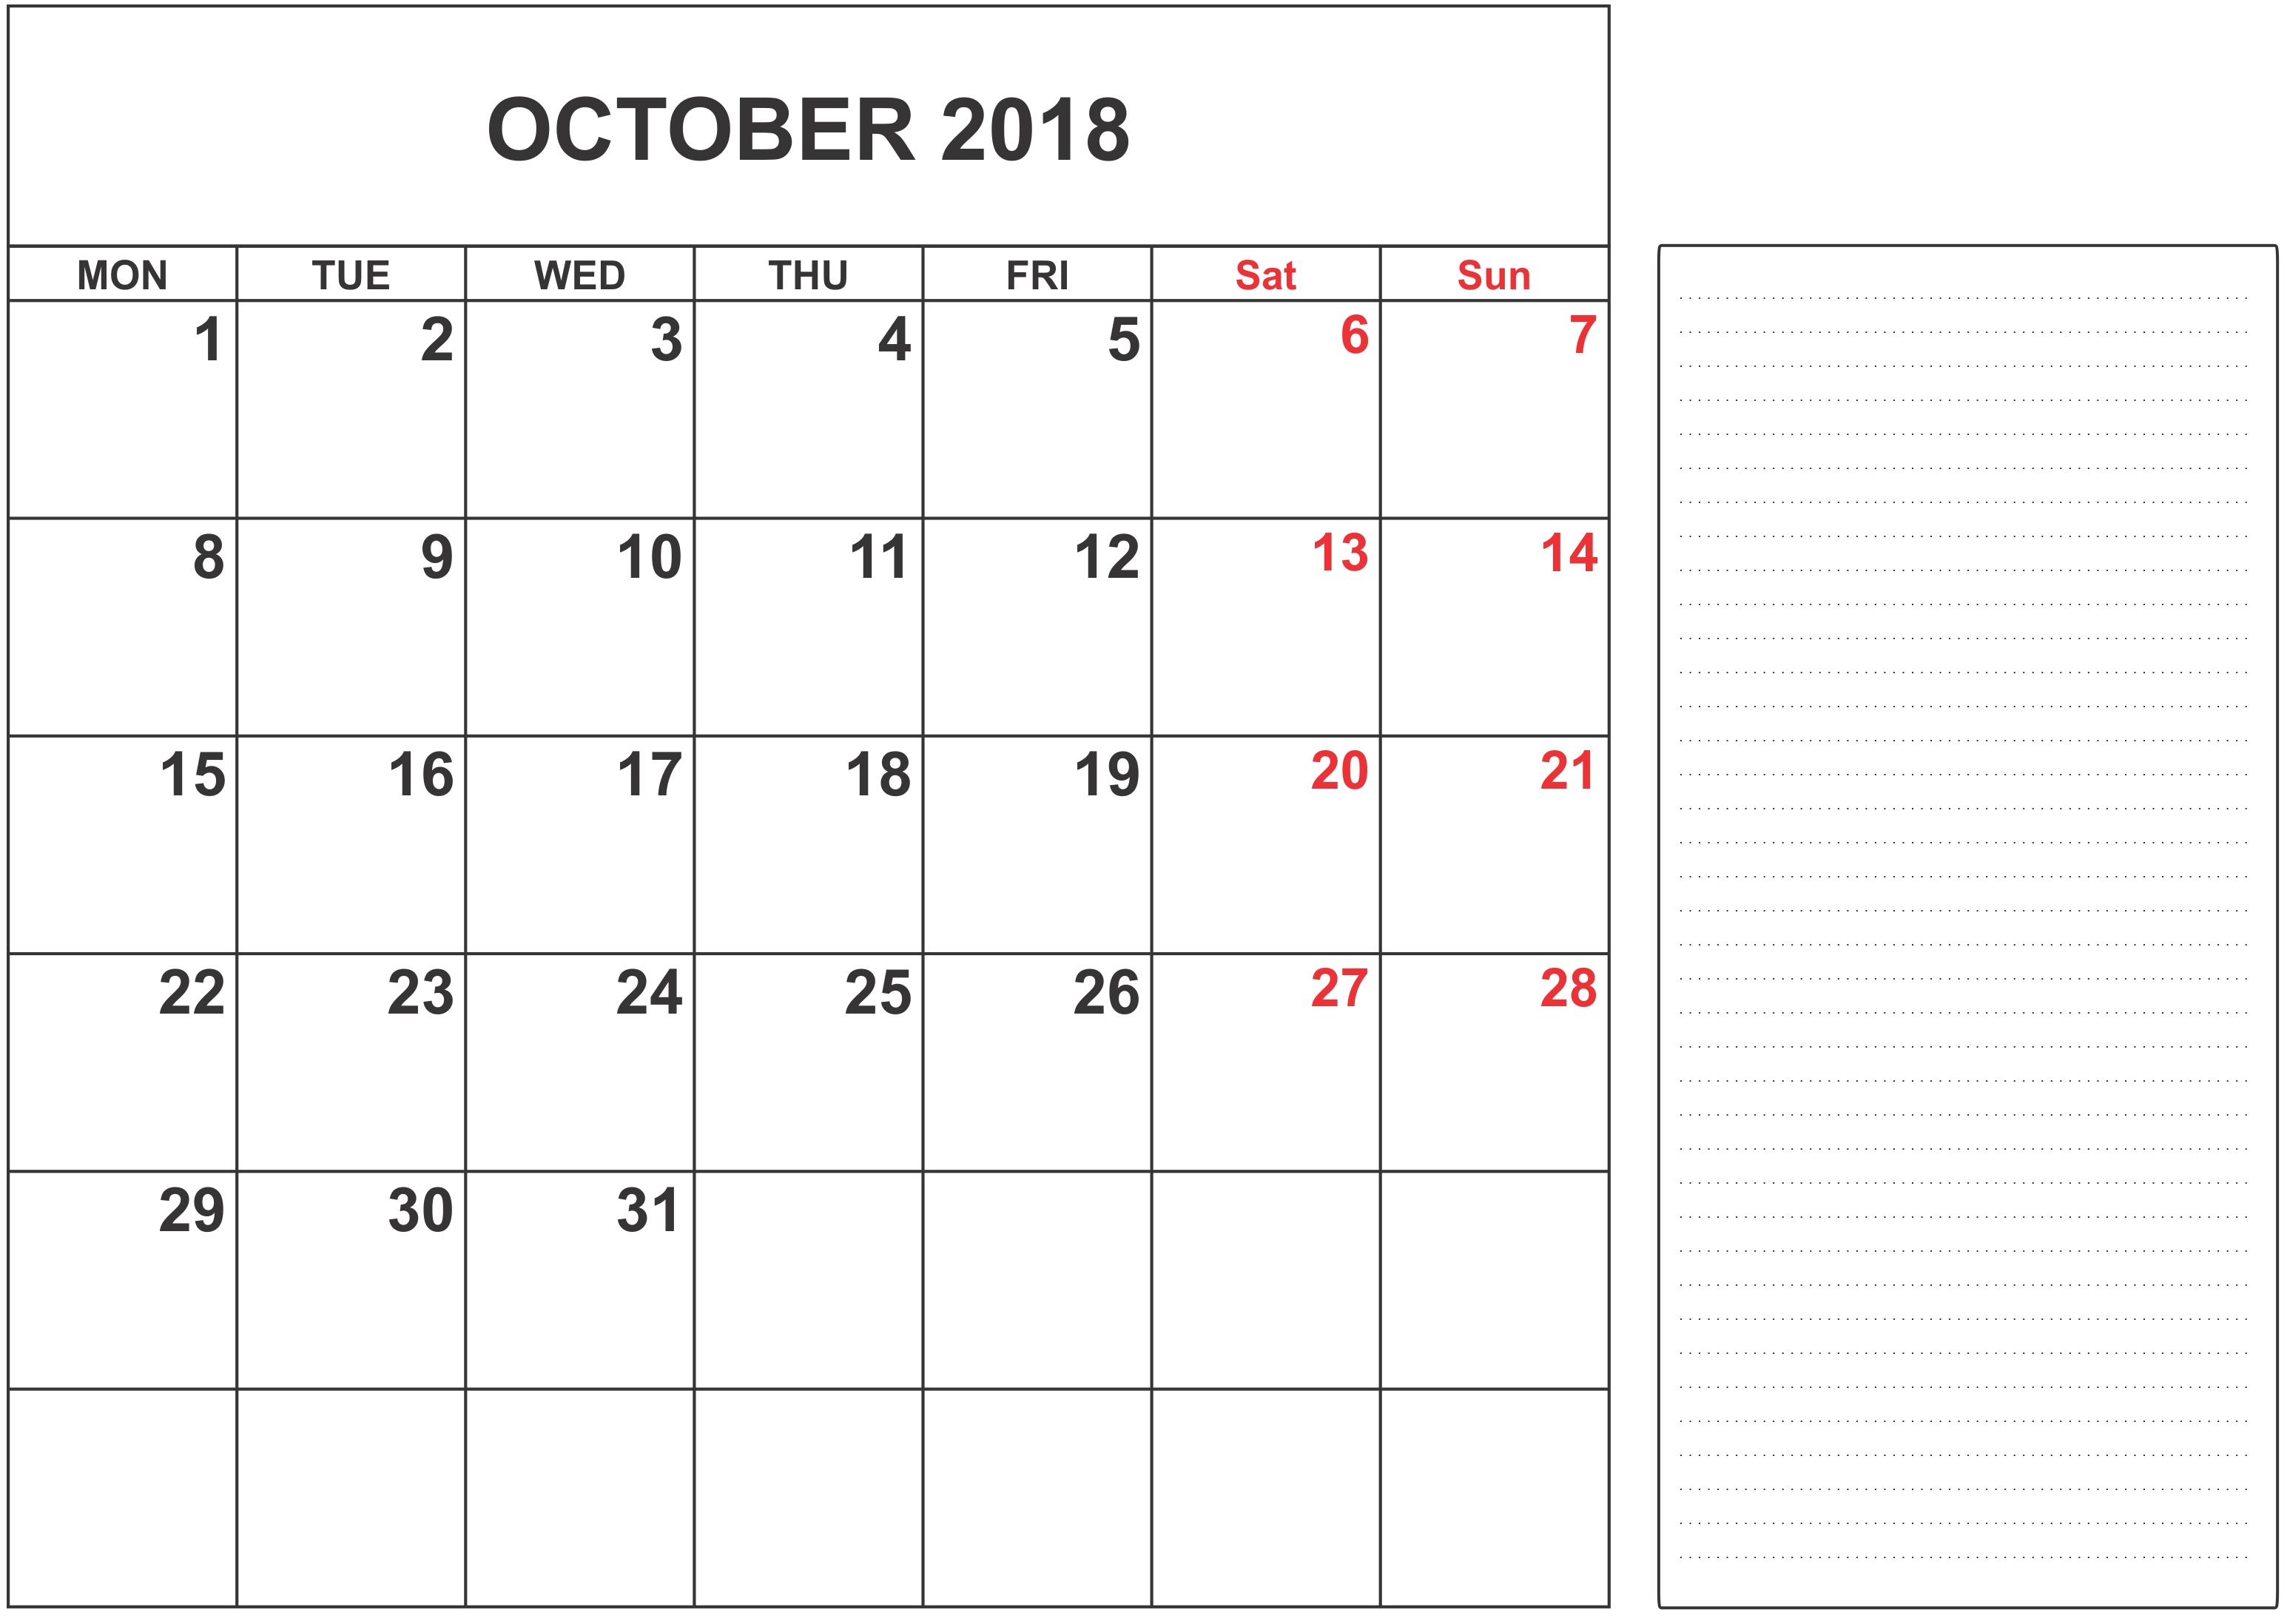 october 2018 calendar us printable printable paper sheets October 2018 Calendar Holidays USA erdferdf